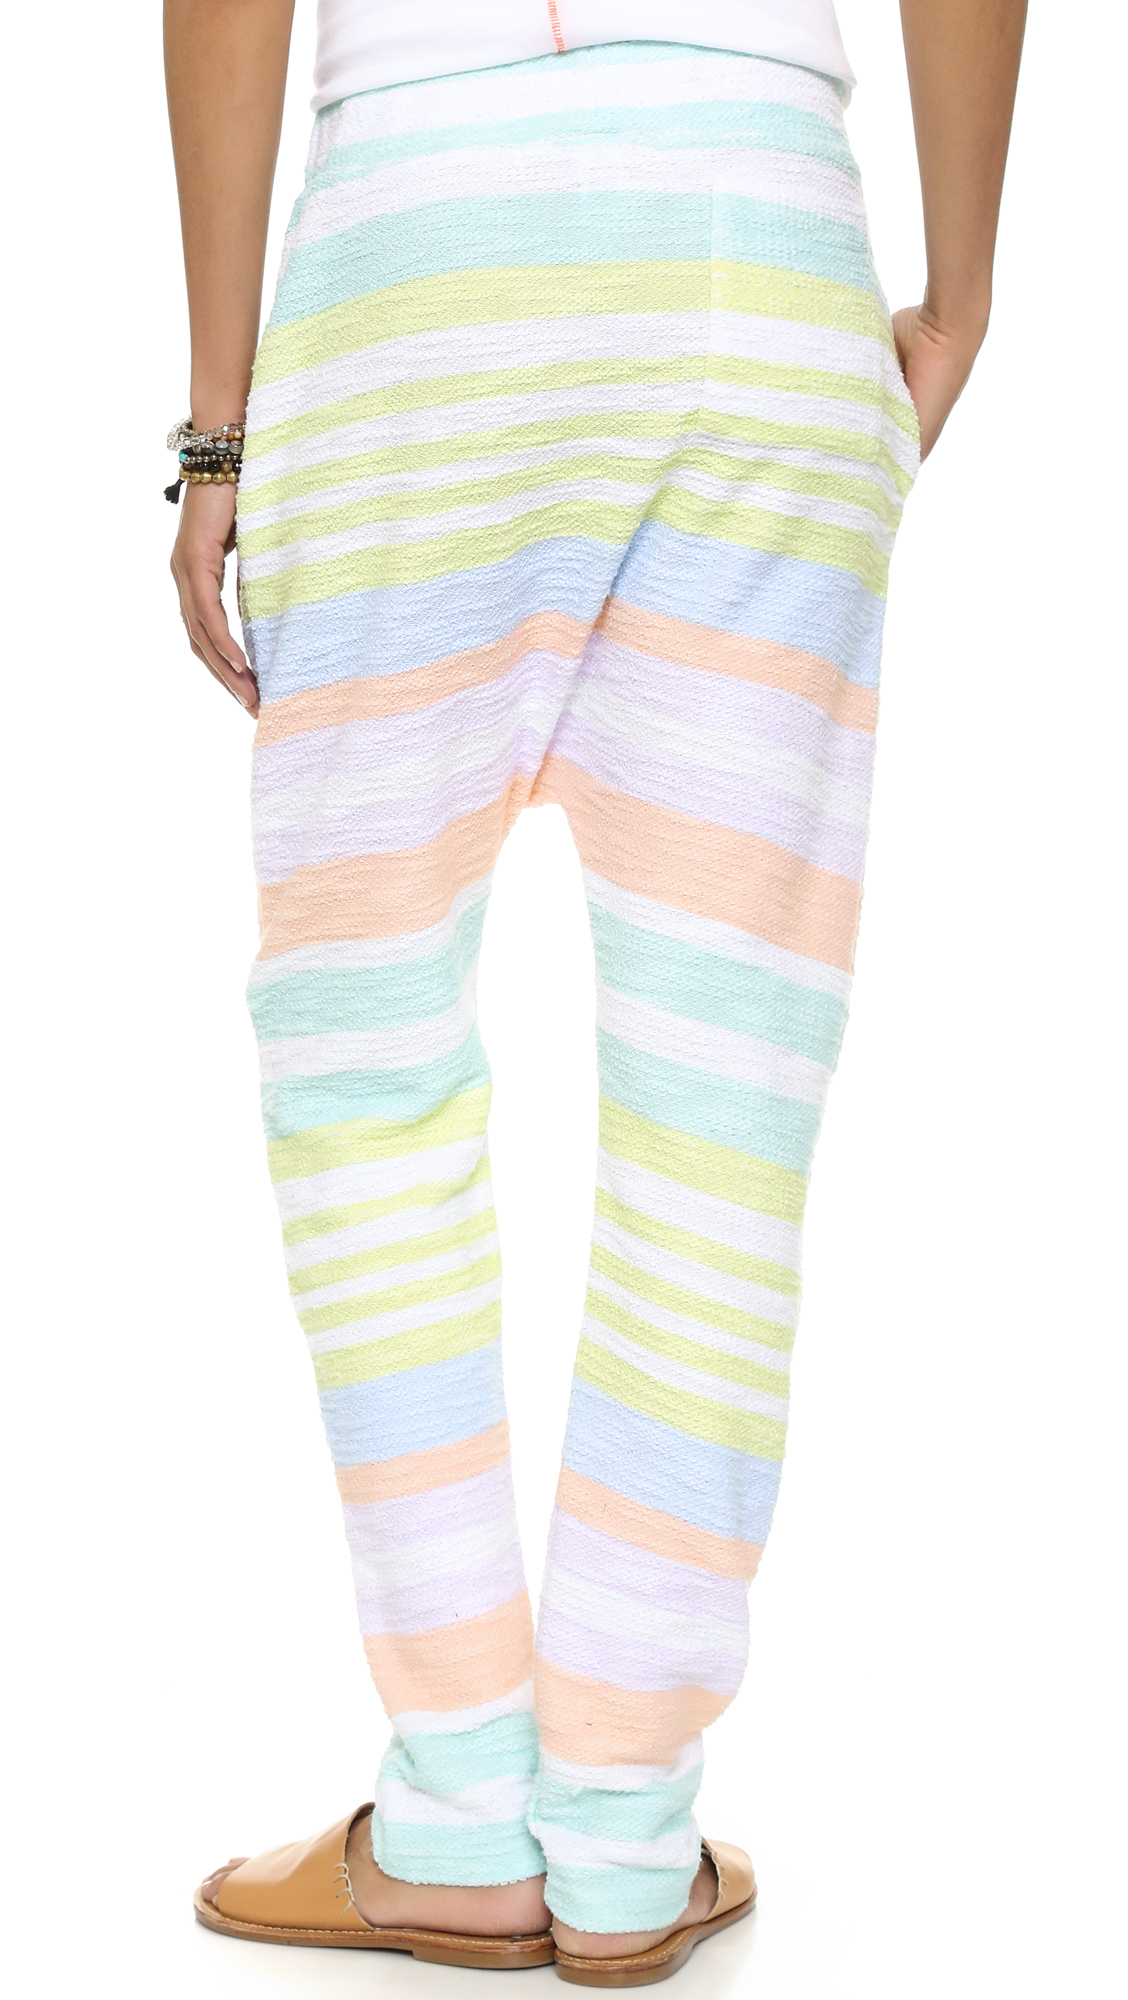 Pastel Striped Pattern Womens Clothing & Apparel